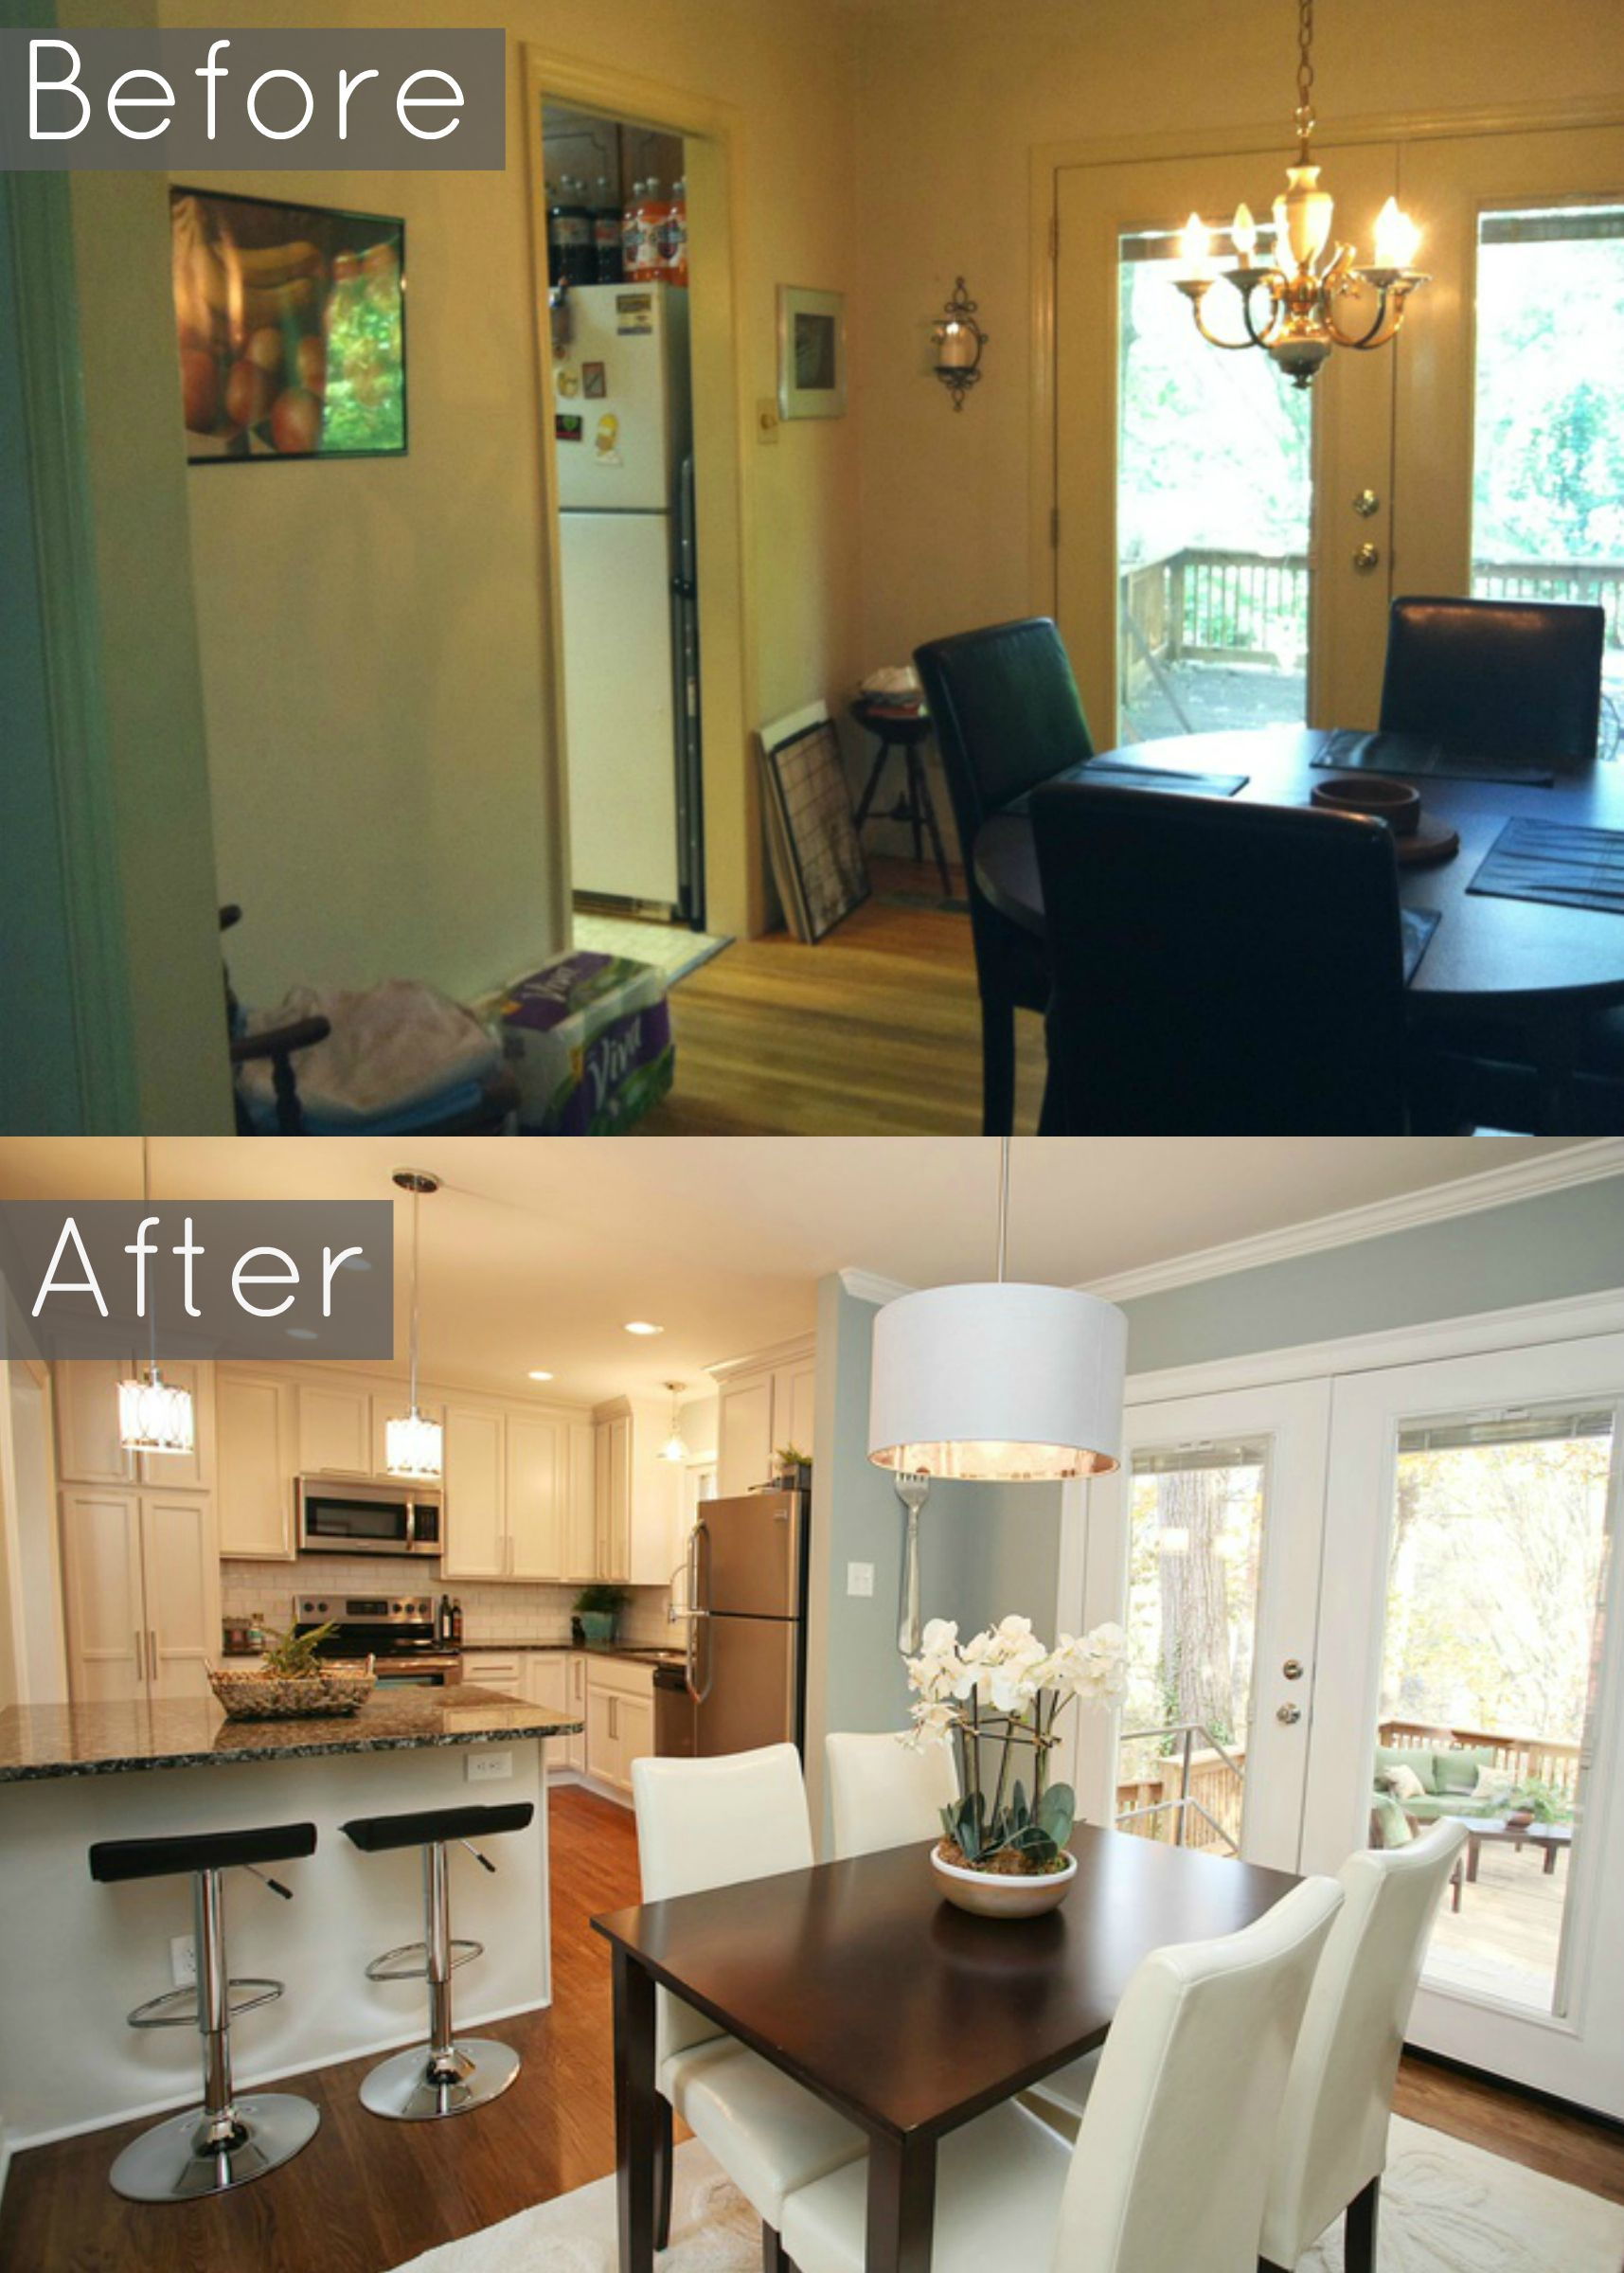 20+ Small Kitchen Renovations Before and After | House ...